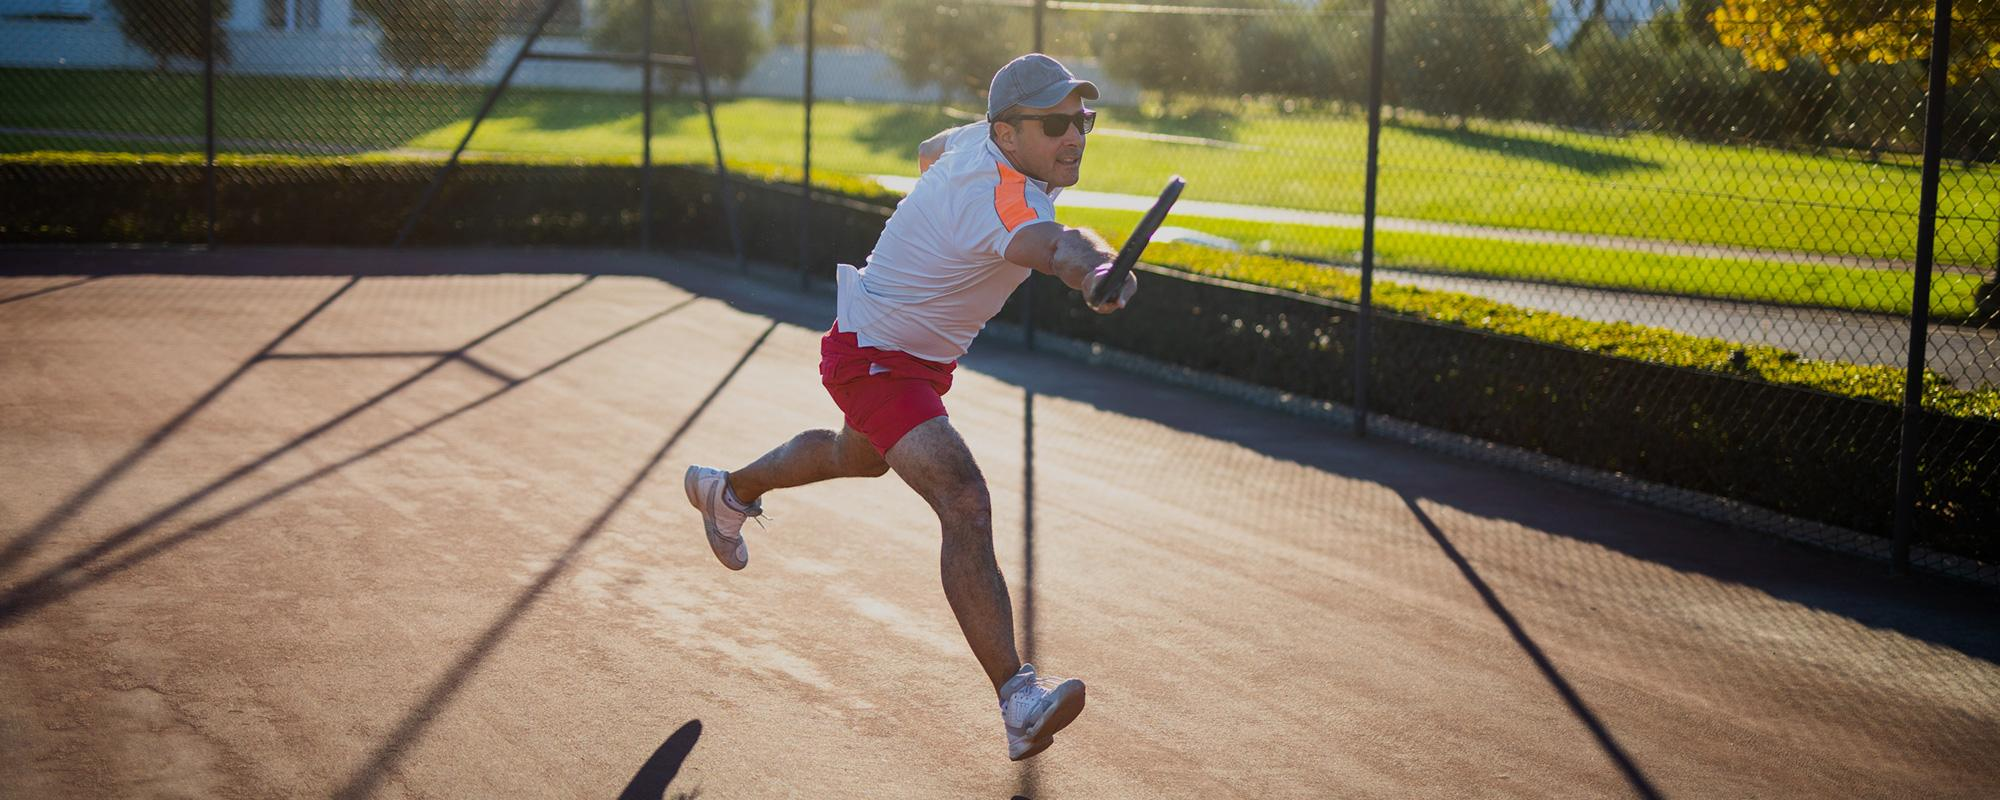 Tennis at VDV Health Club